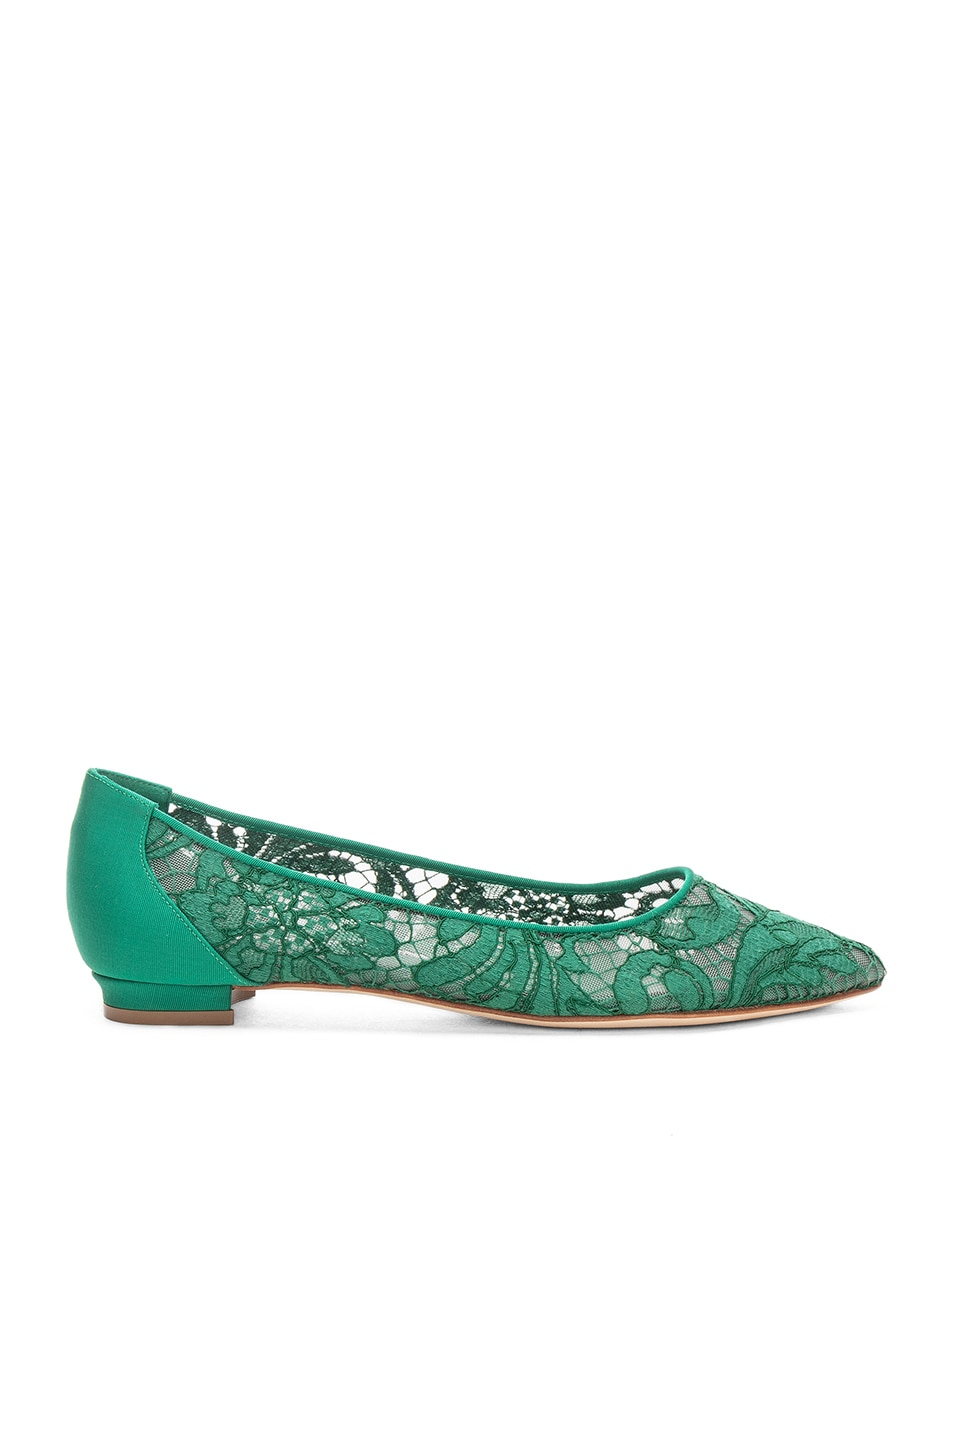 Image 1 of Manolo Blahnik Tittola Lace 10 Pea Flat in Emerald Green Marescot